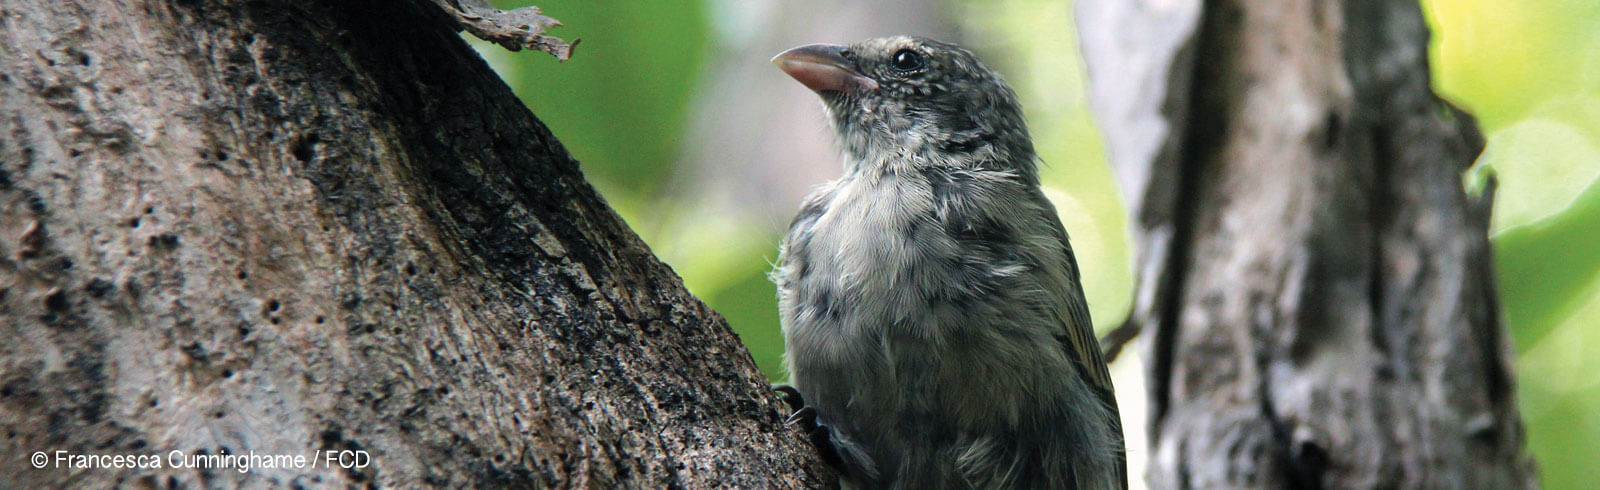 Protection and Recovery of Mangrove Finch Population